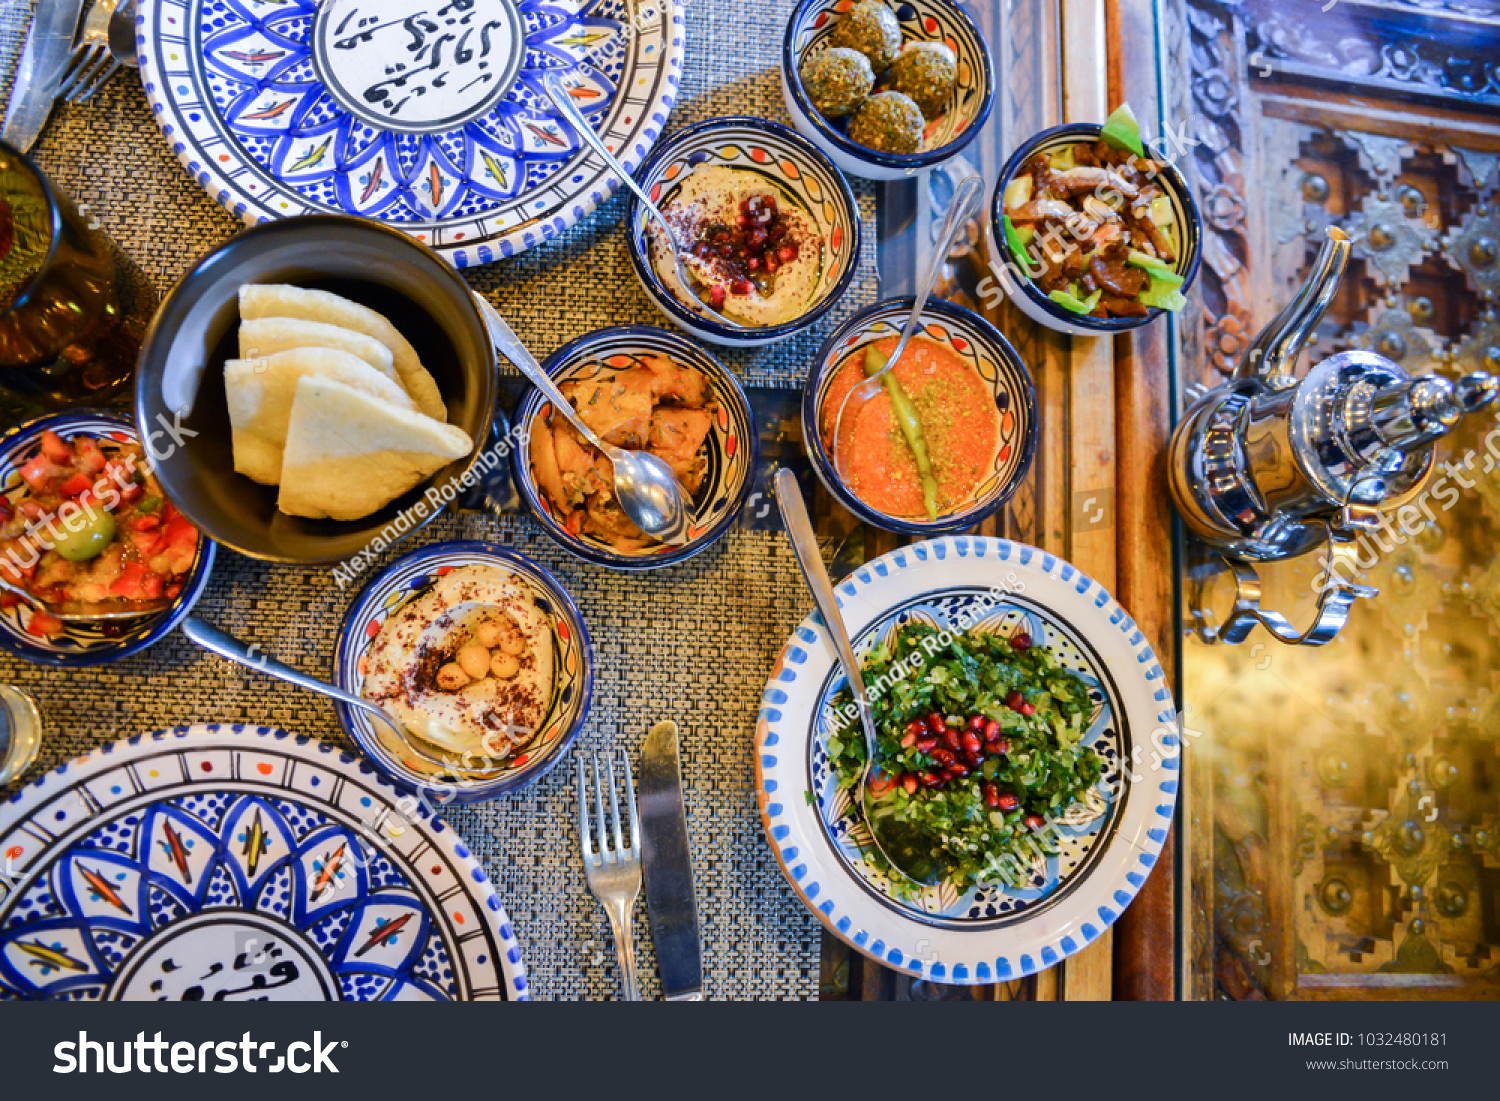 stock-photo-middle-eastern-or-arabic-dis